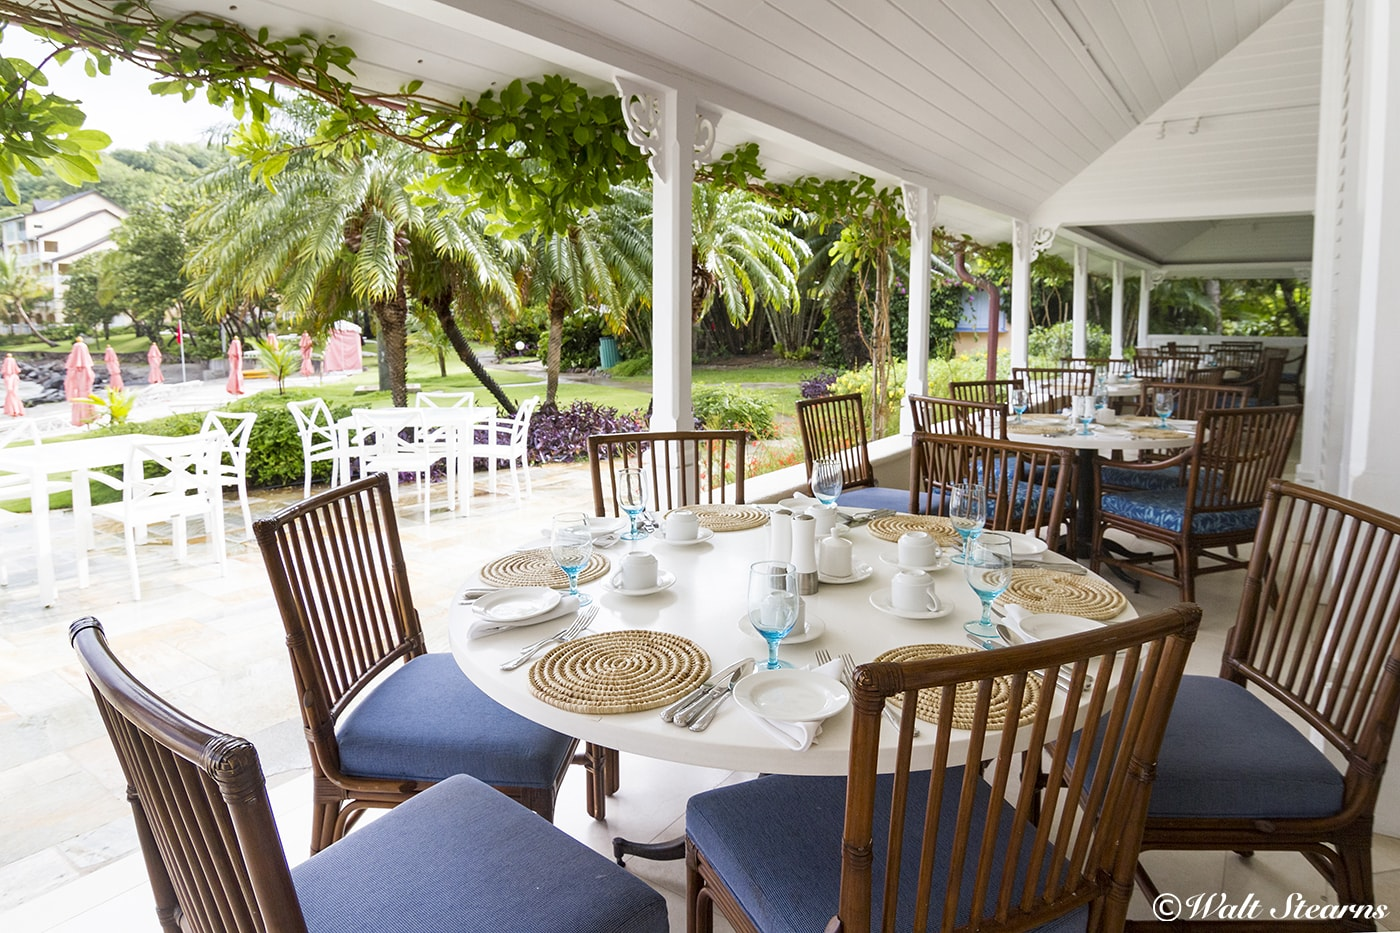 The beachside Cariblue restaurant serves a mix of Mediterranean, Asian, Mexican, Italian and island specialties, and features an extensive wine list.